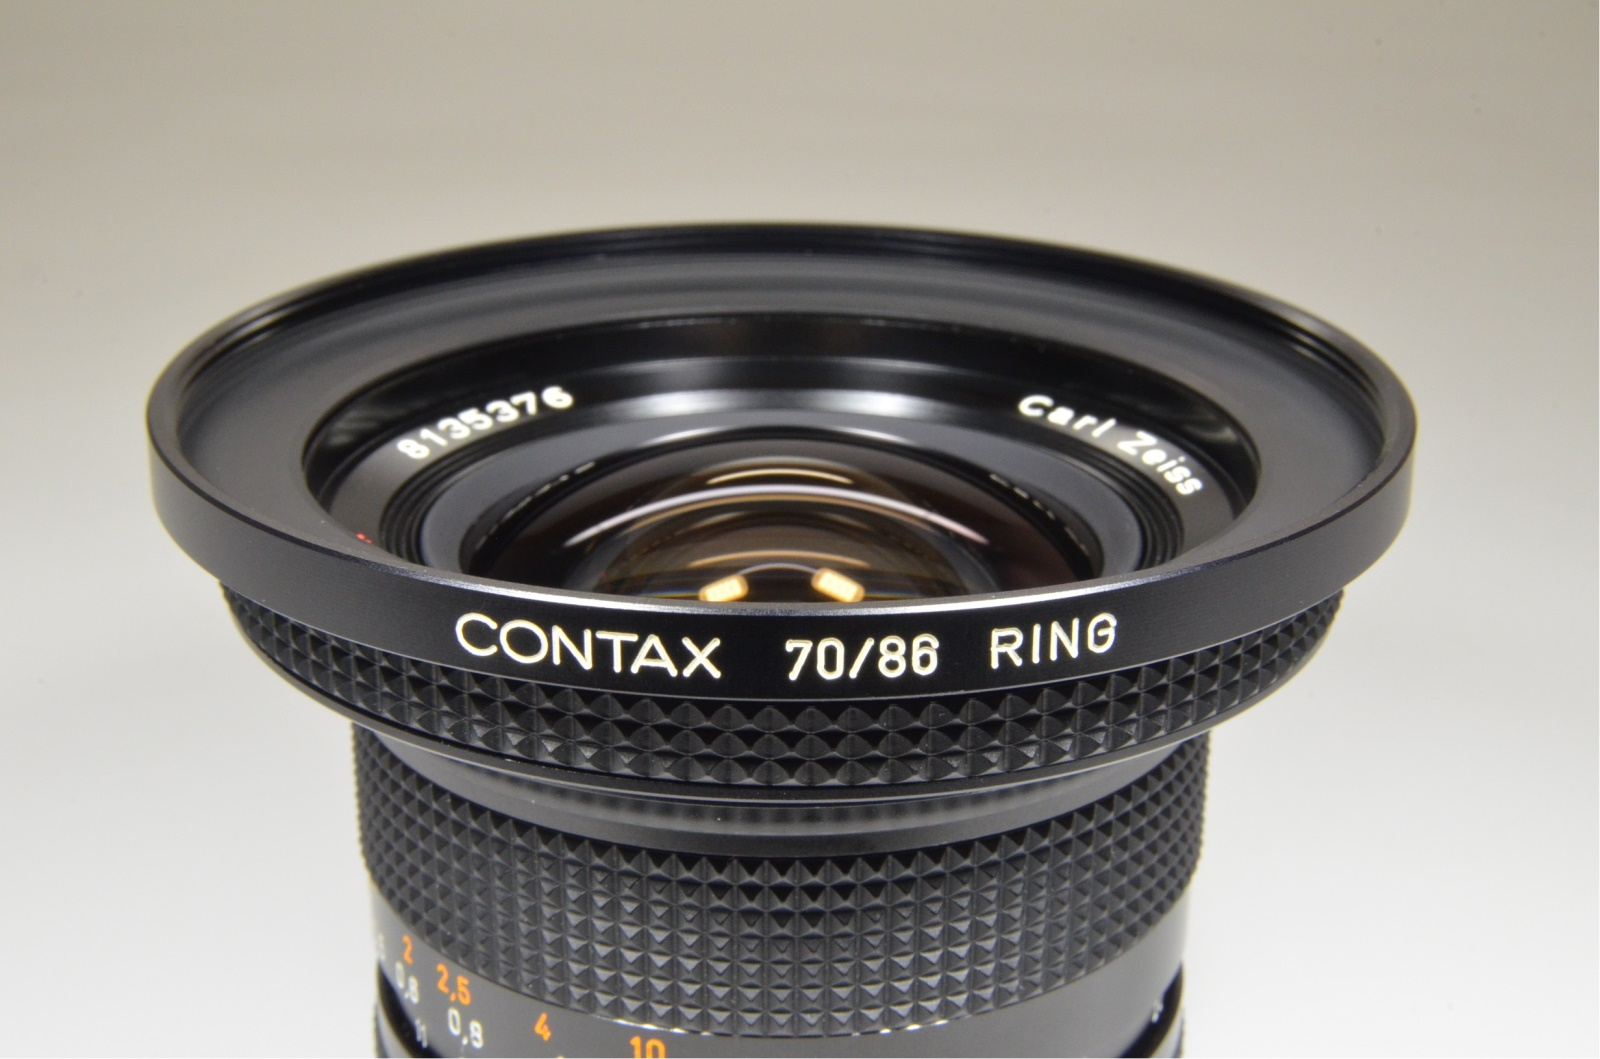 contax carl zeiss distagon t* 18mm f4 mmj japan with 70/86 ring